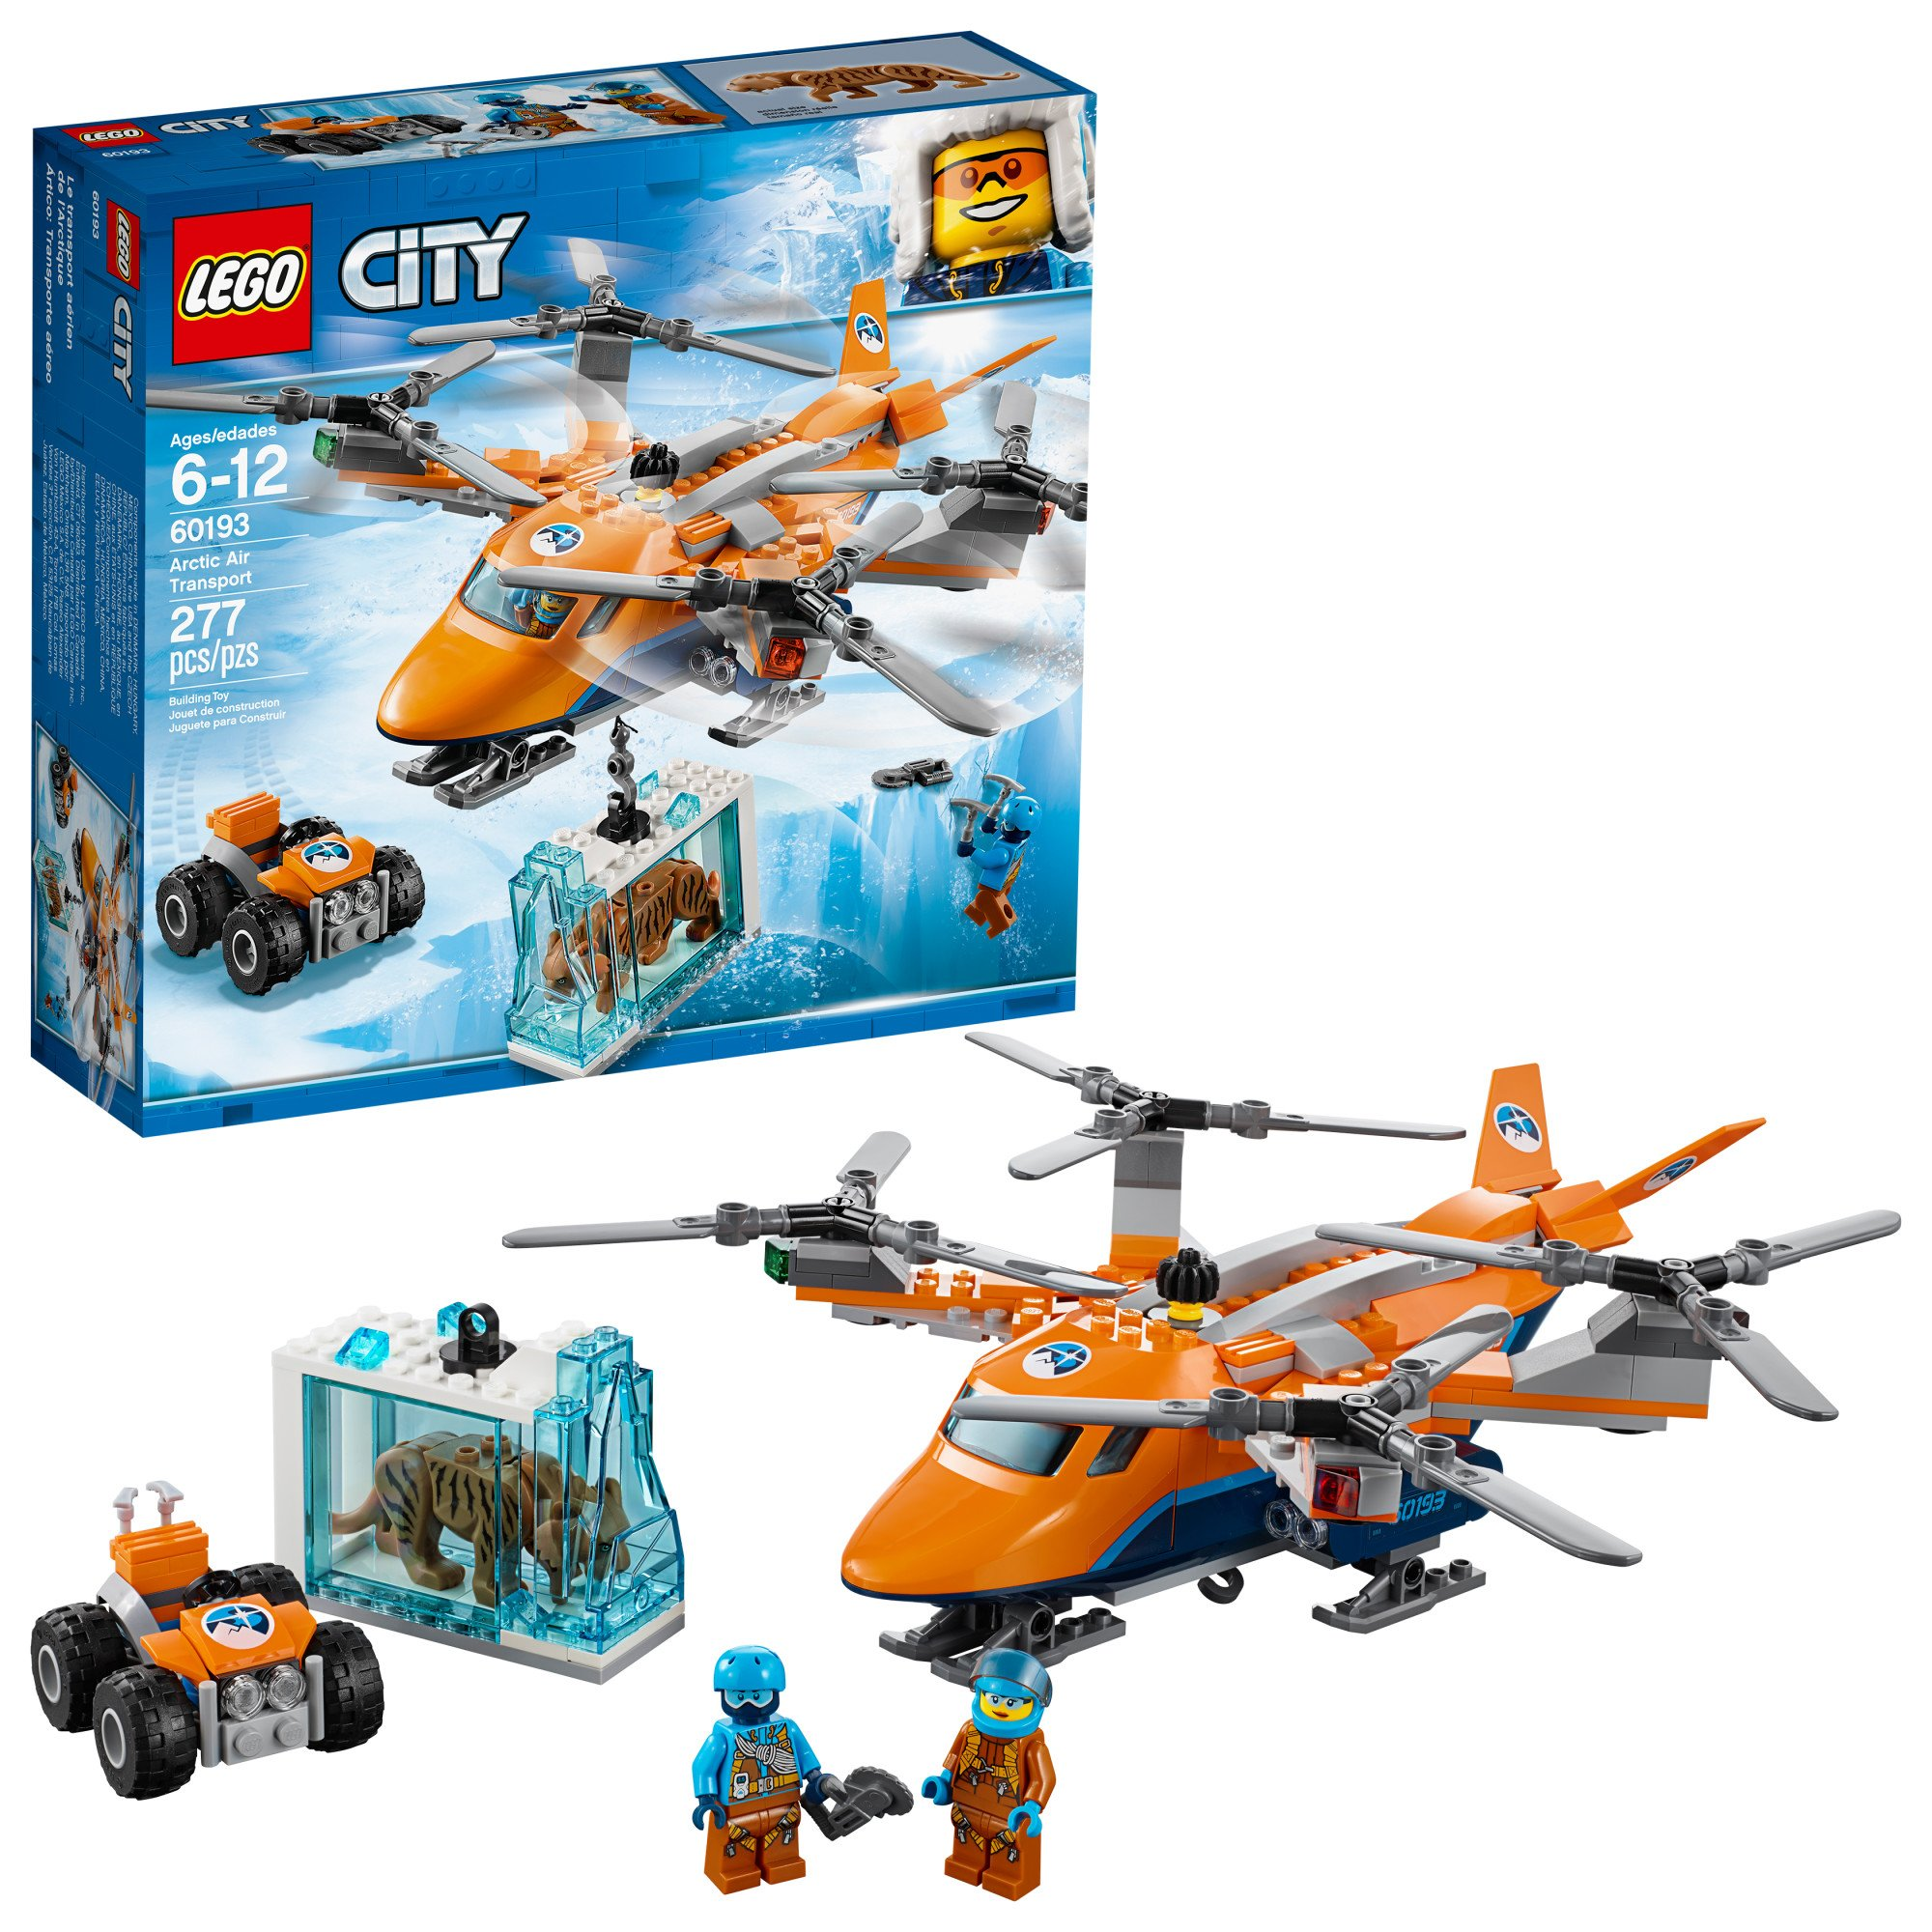 LEGO City Arctic Air Transport 60193 Building Kit (277 Pieces) by LEGO